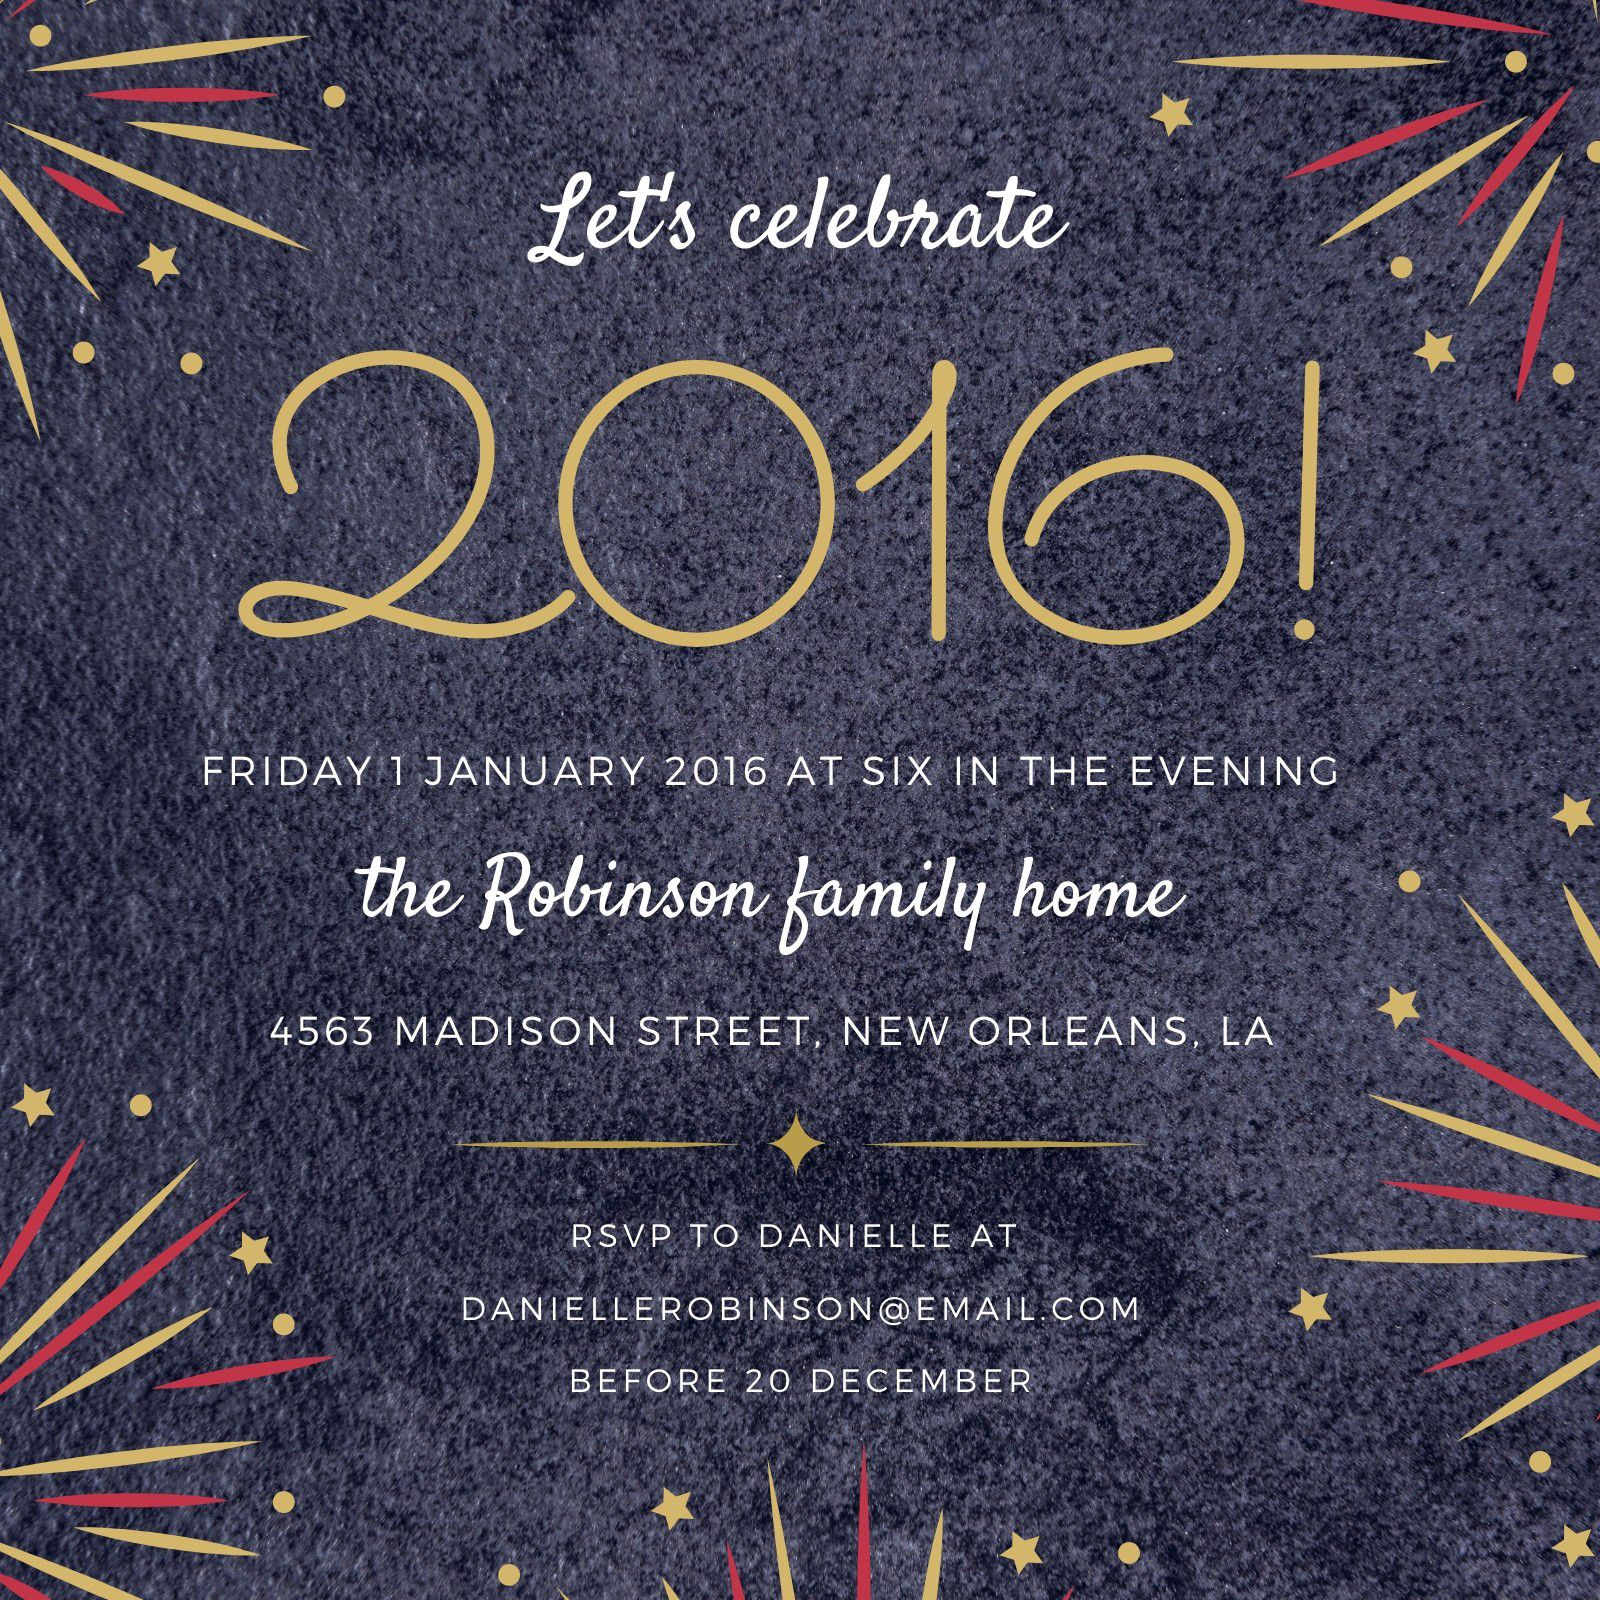 005 Surprising New Year Eve Invitation Template Concept  Party Free WordFull